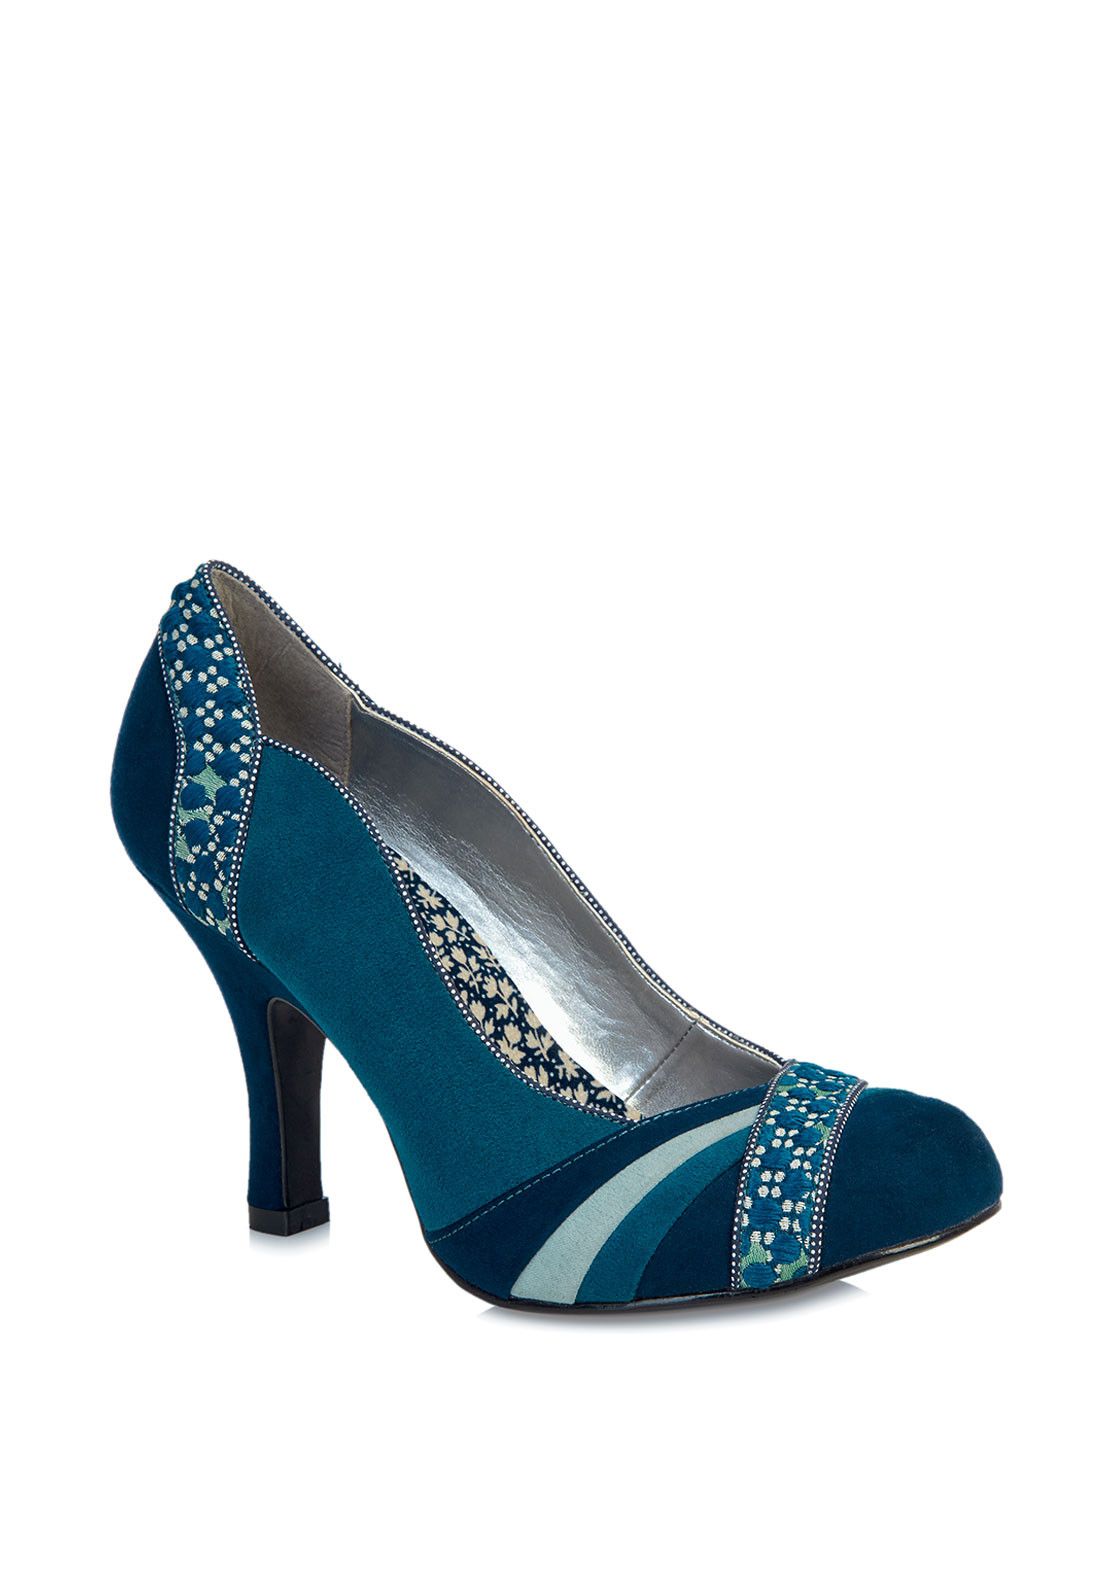 Ruby Shoo Heather Embroidered Heeled Shoes, Blue